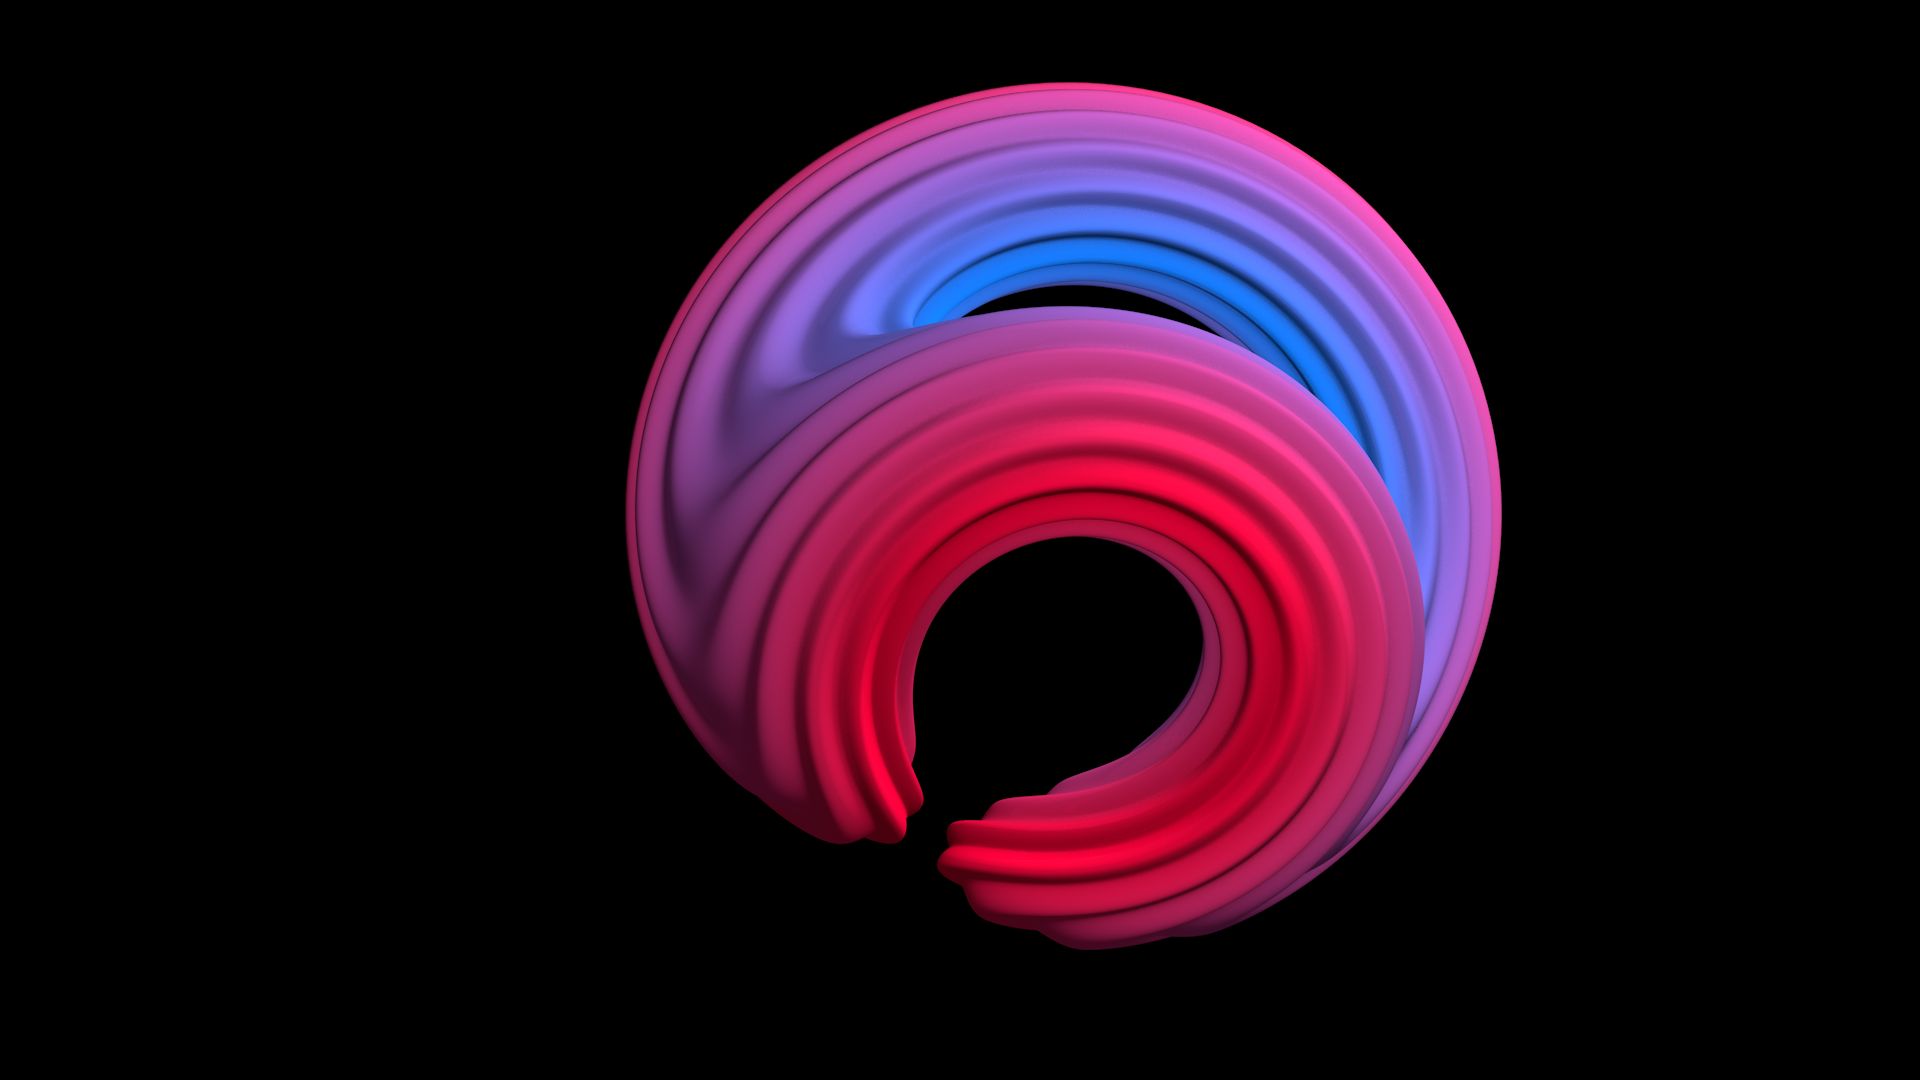 NSS SPIRAL EXAMPLE GLOSSY v9.png